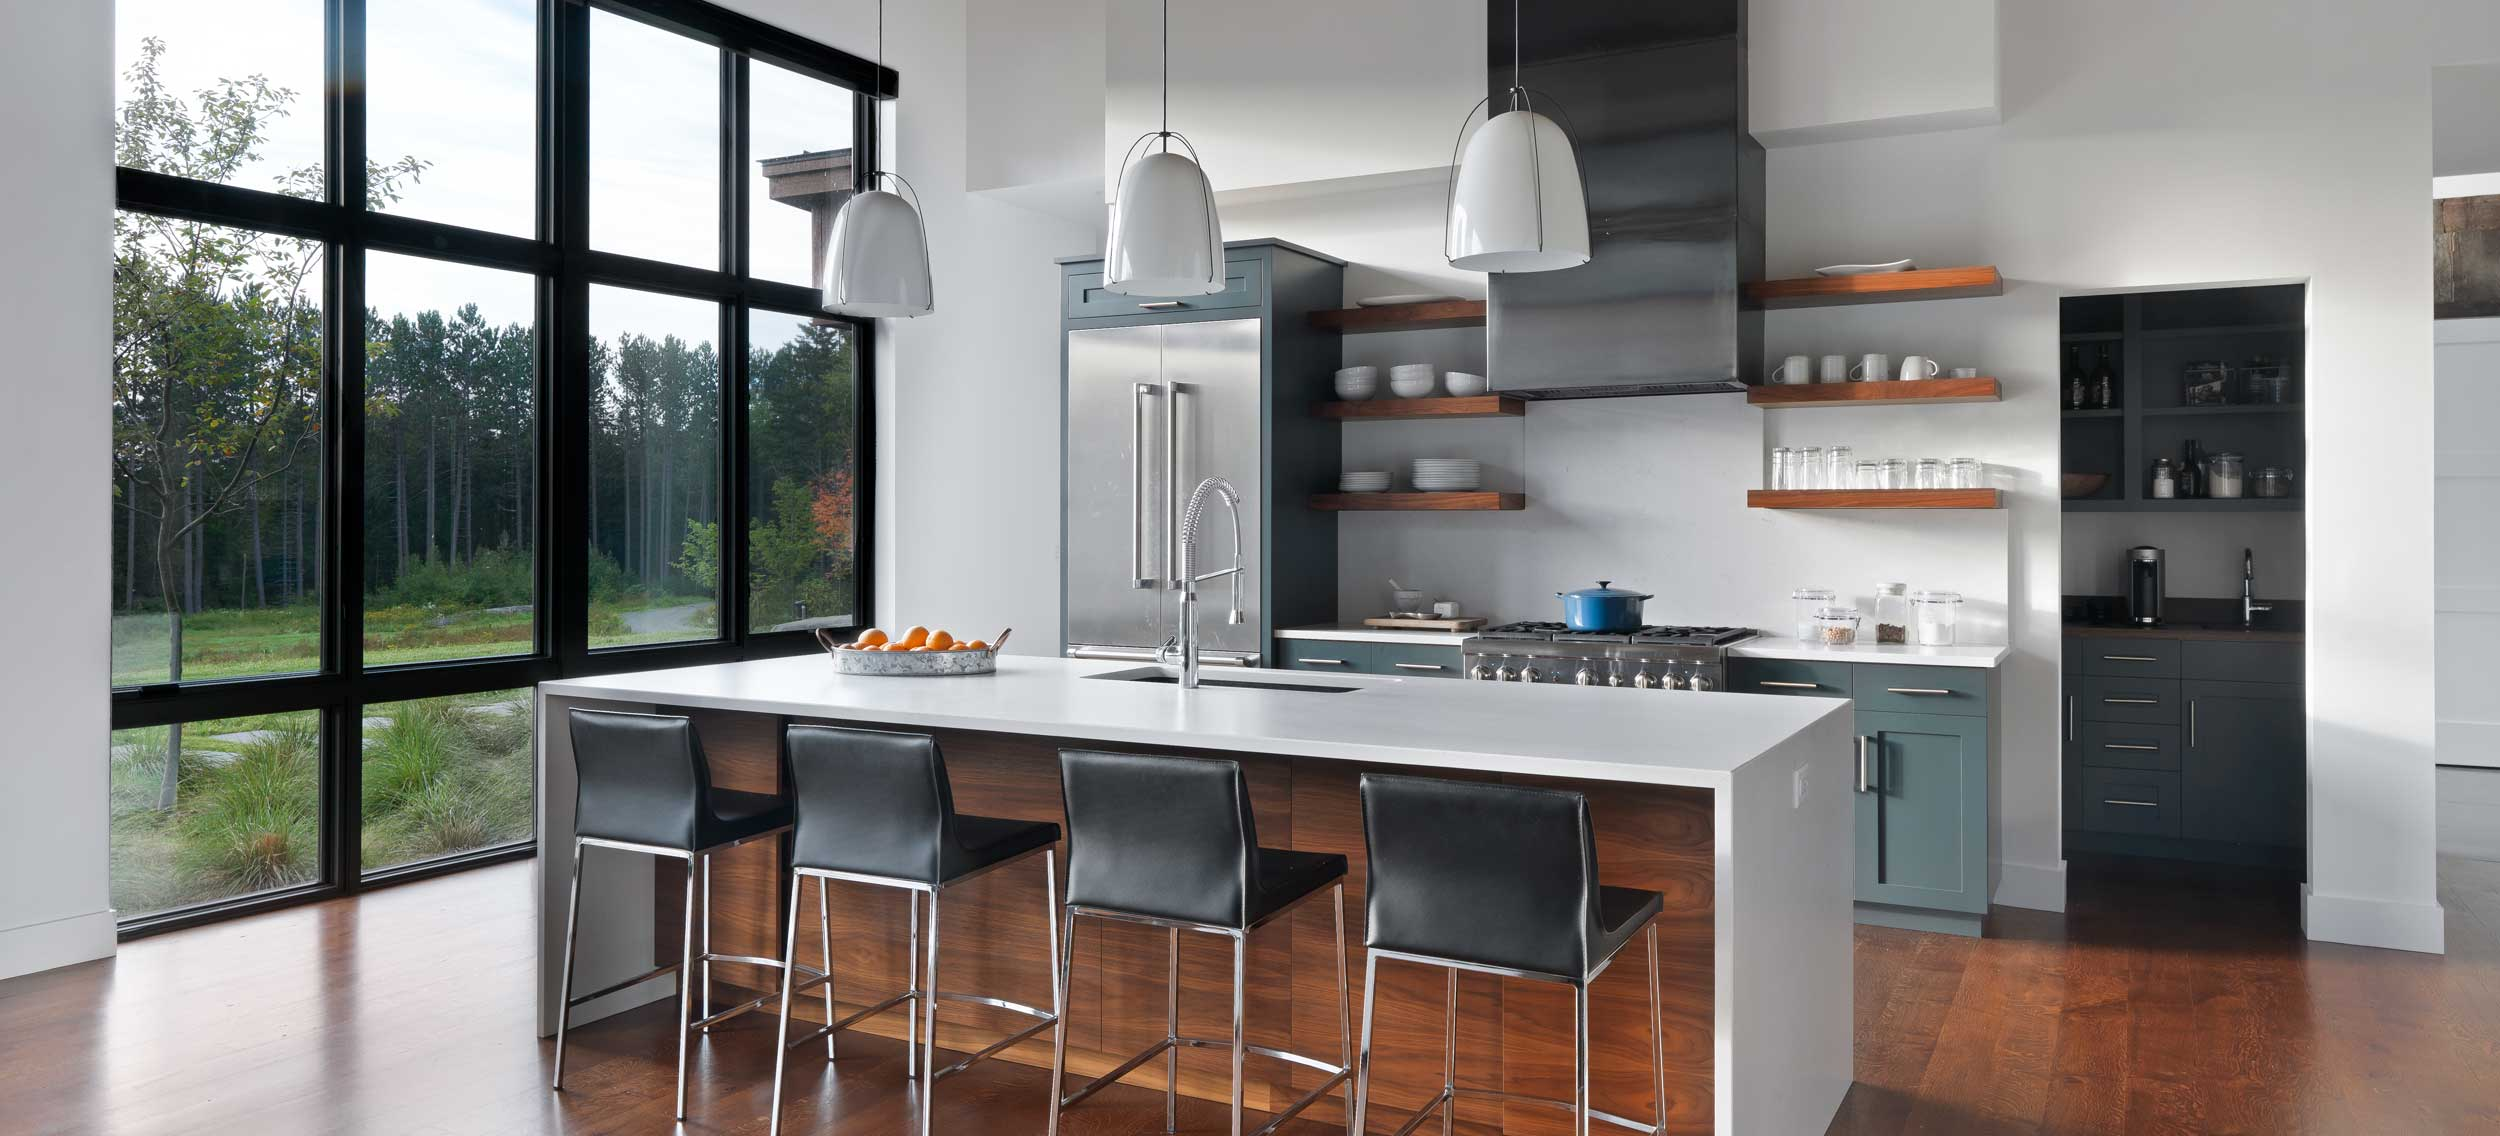 Simpson Cabinetry